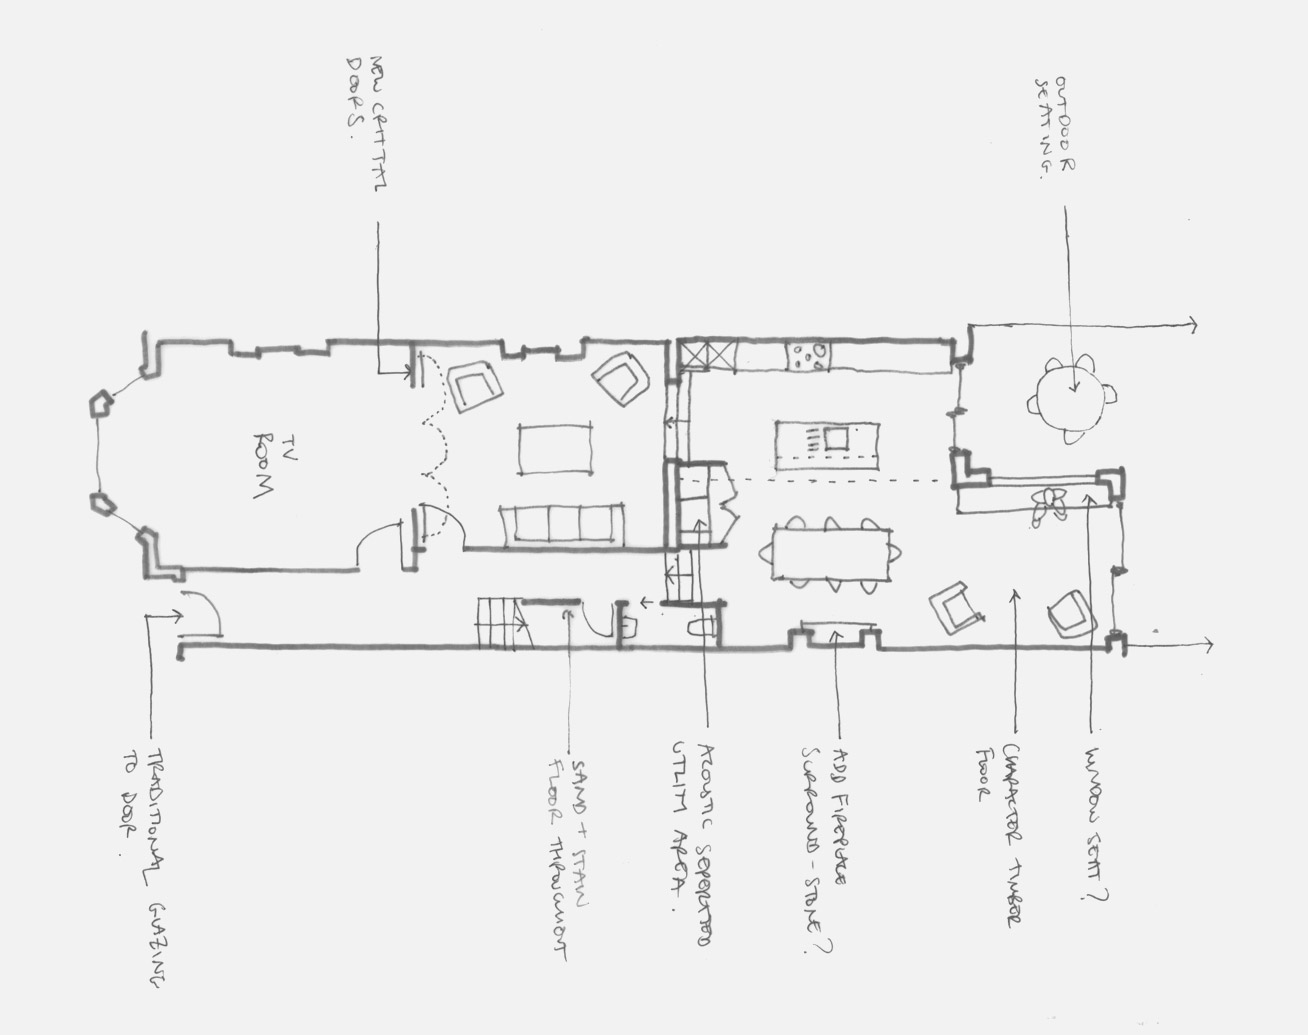 Stroud Green architect house extension